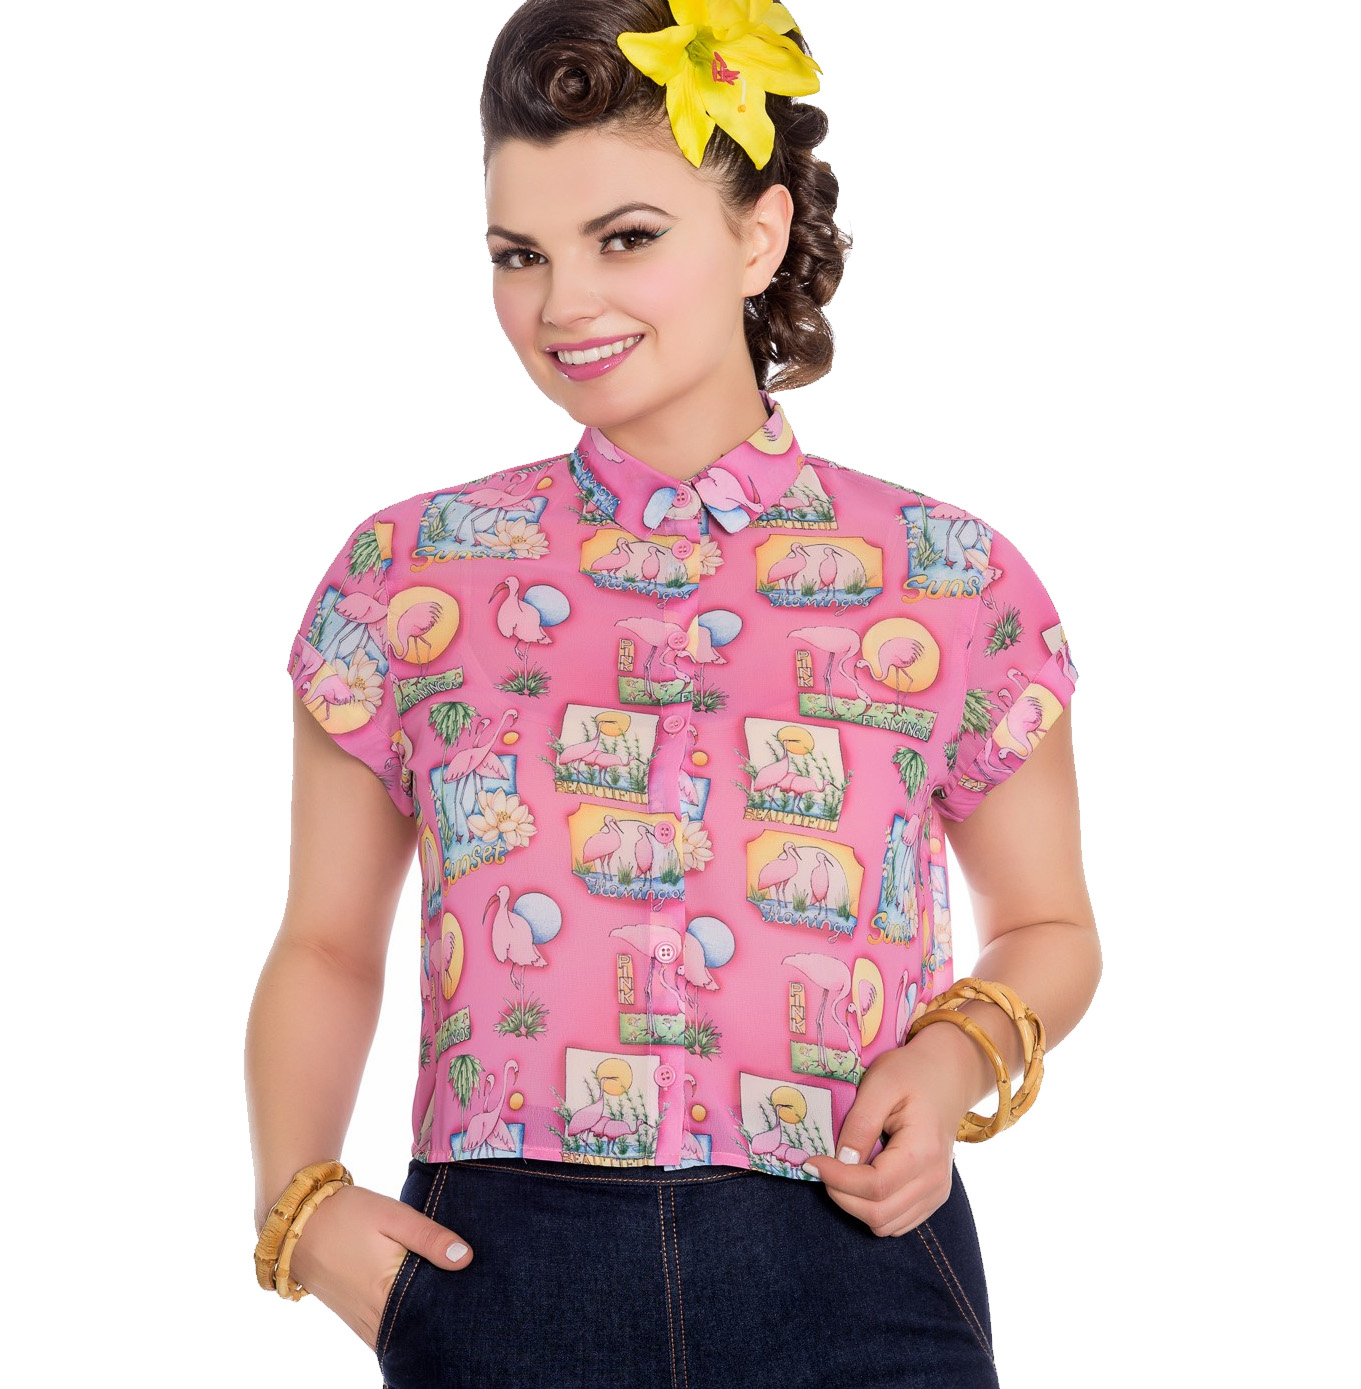 thumbnail 6 - Hell Bunny 50s Retro Top Pink Flamingo MAXINE Cropped Blouse Shirt All Sizes